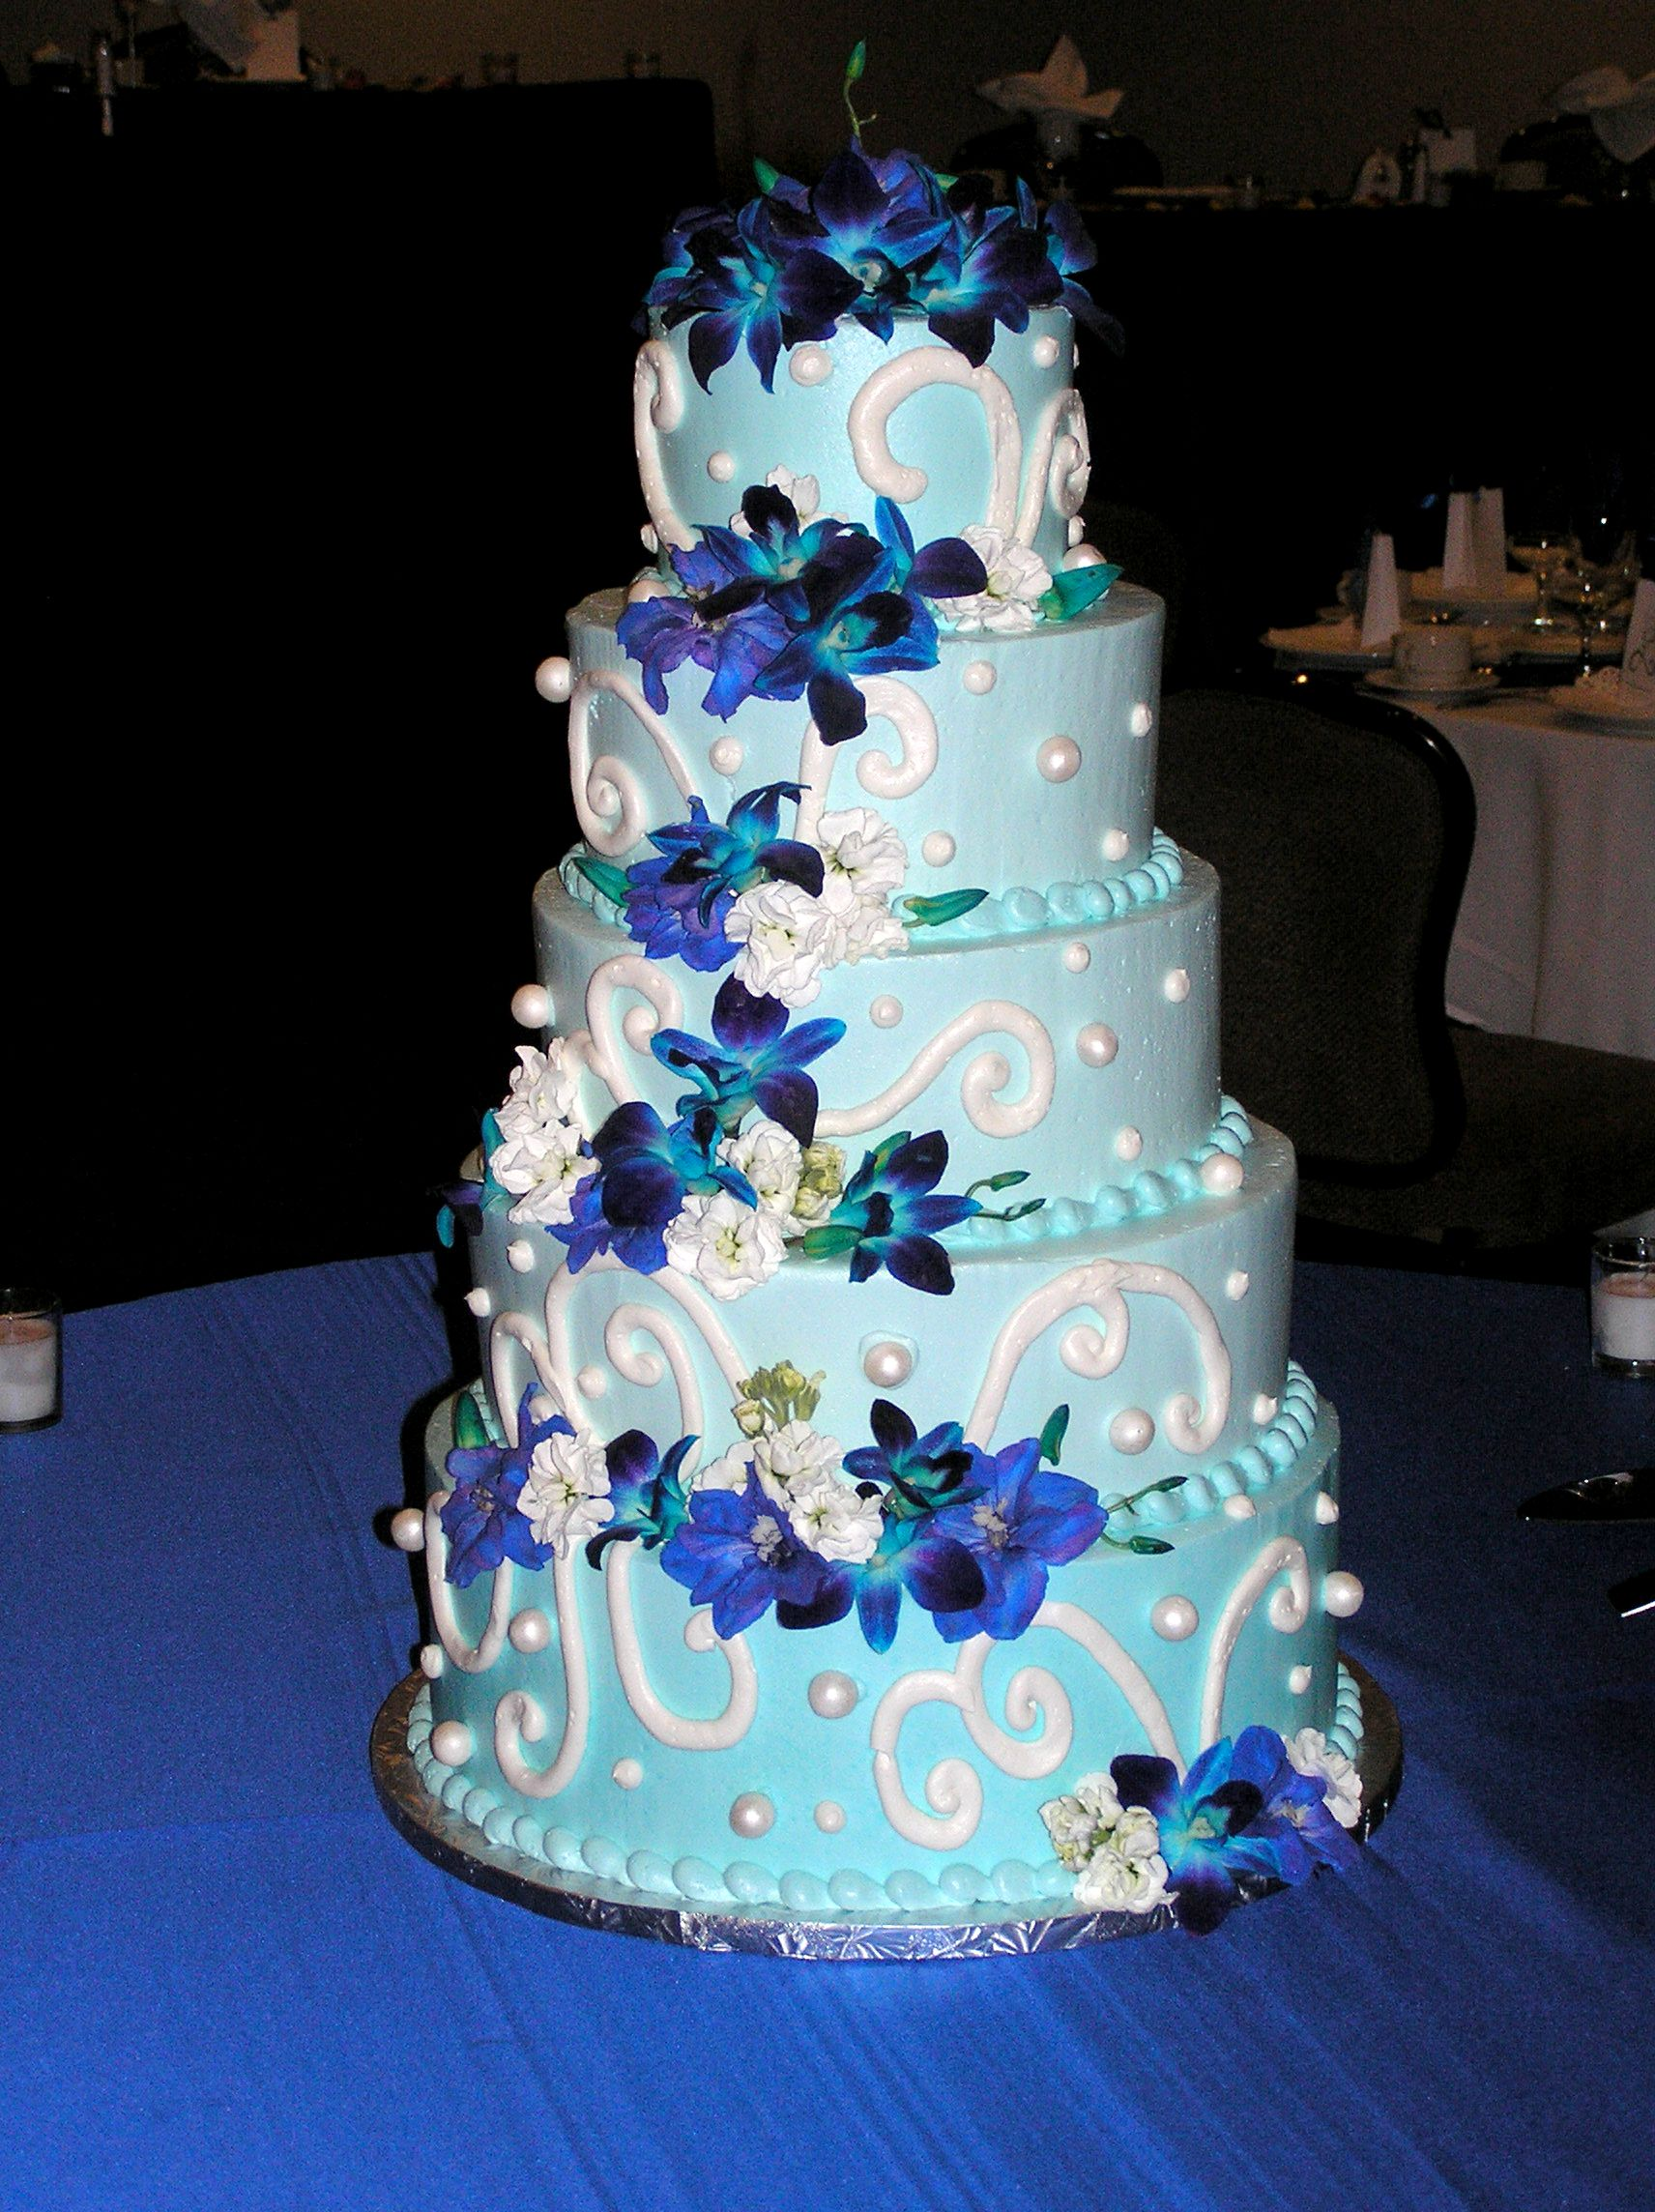 Blue Wedding Cake Decorations 424 Pastry Desserts Sinee Blue Wedding Cake  Decorations 424 Cenypradufo Image Collections